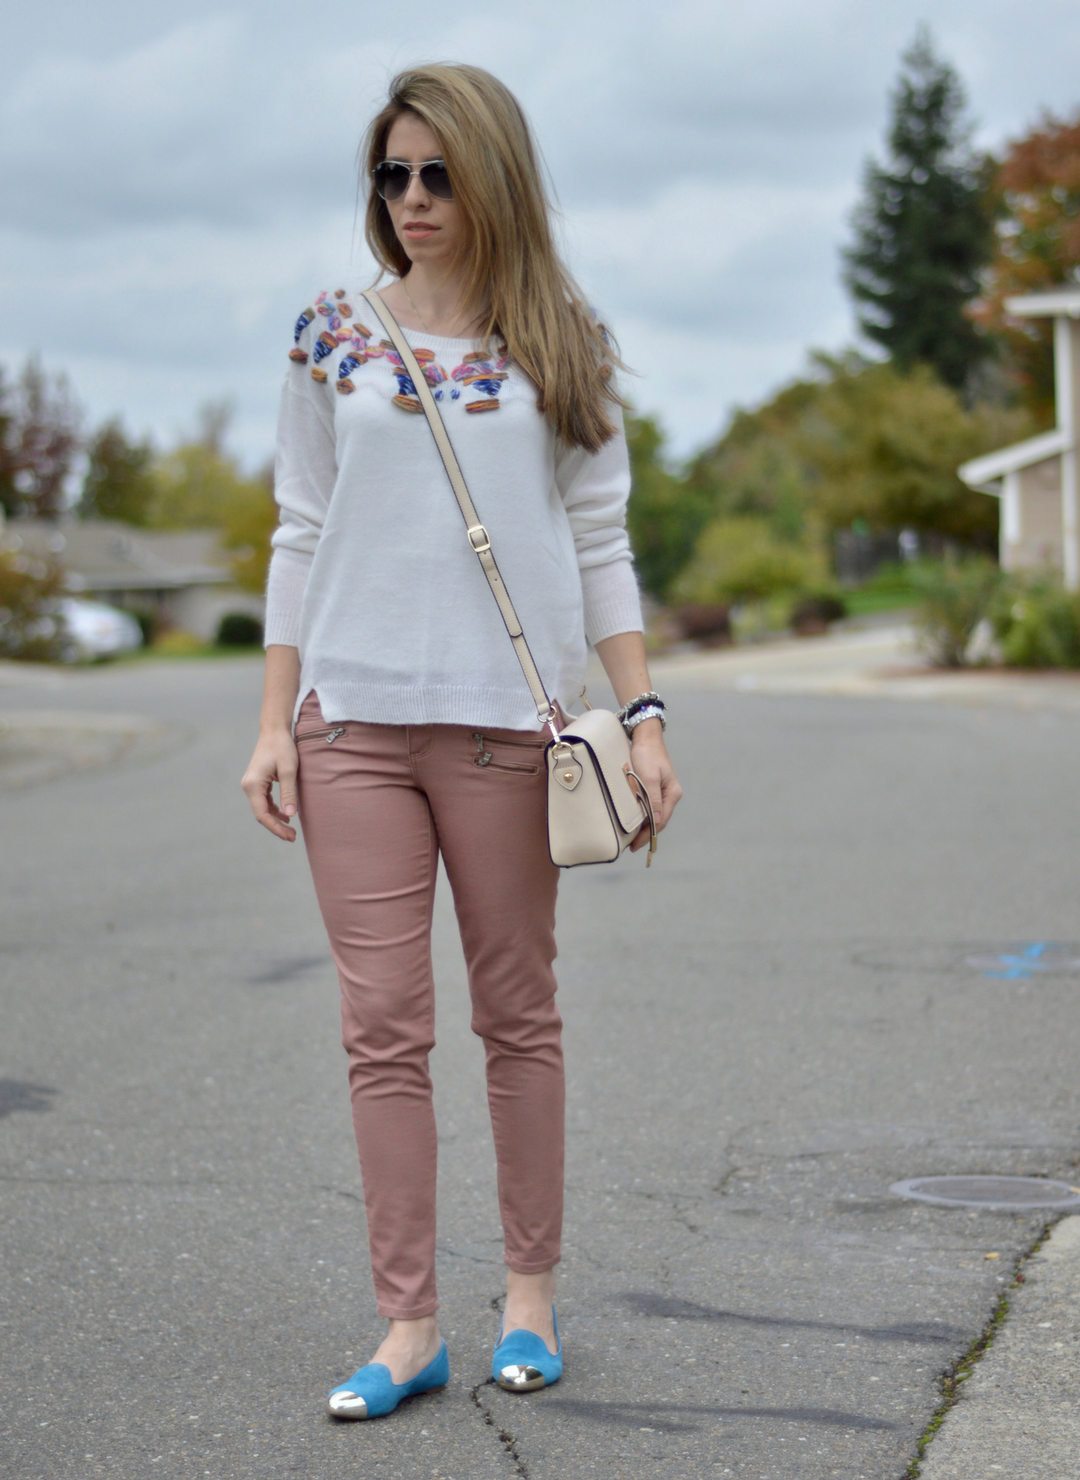 White Cozy Sweater and Blue Shoes